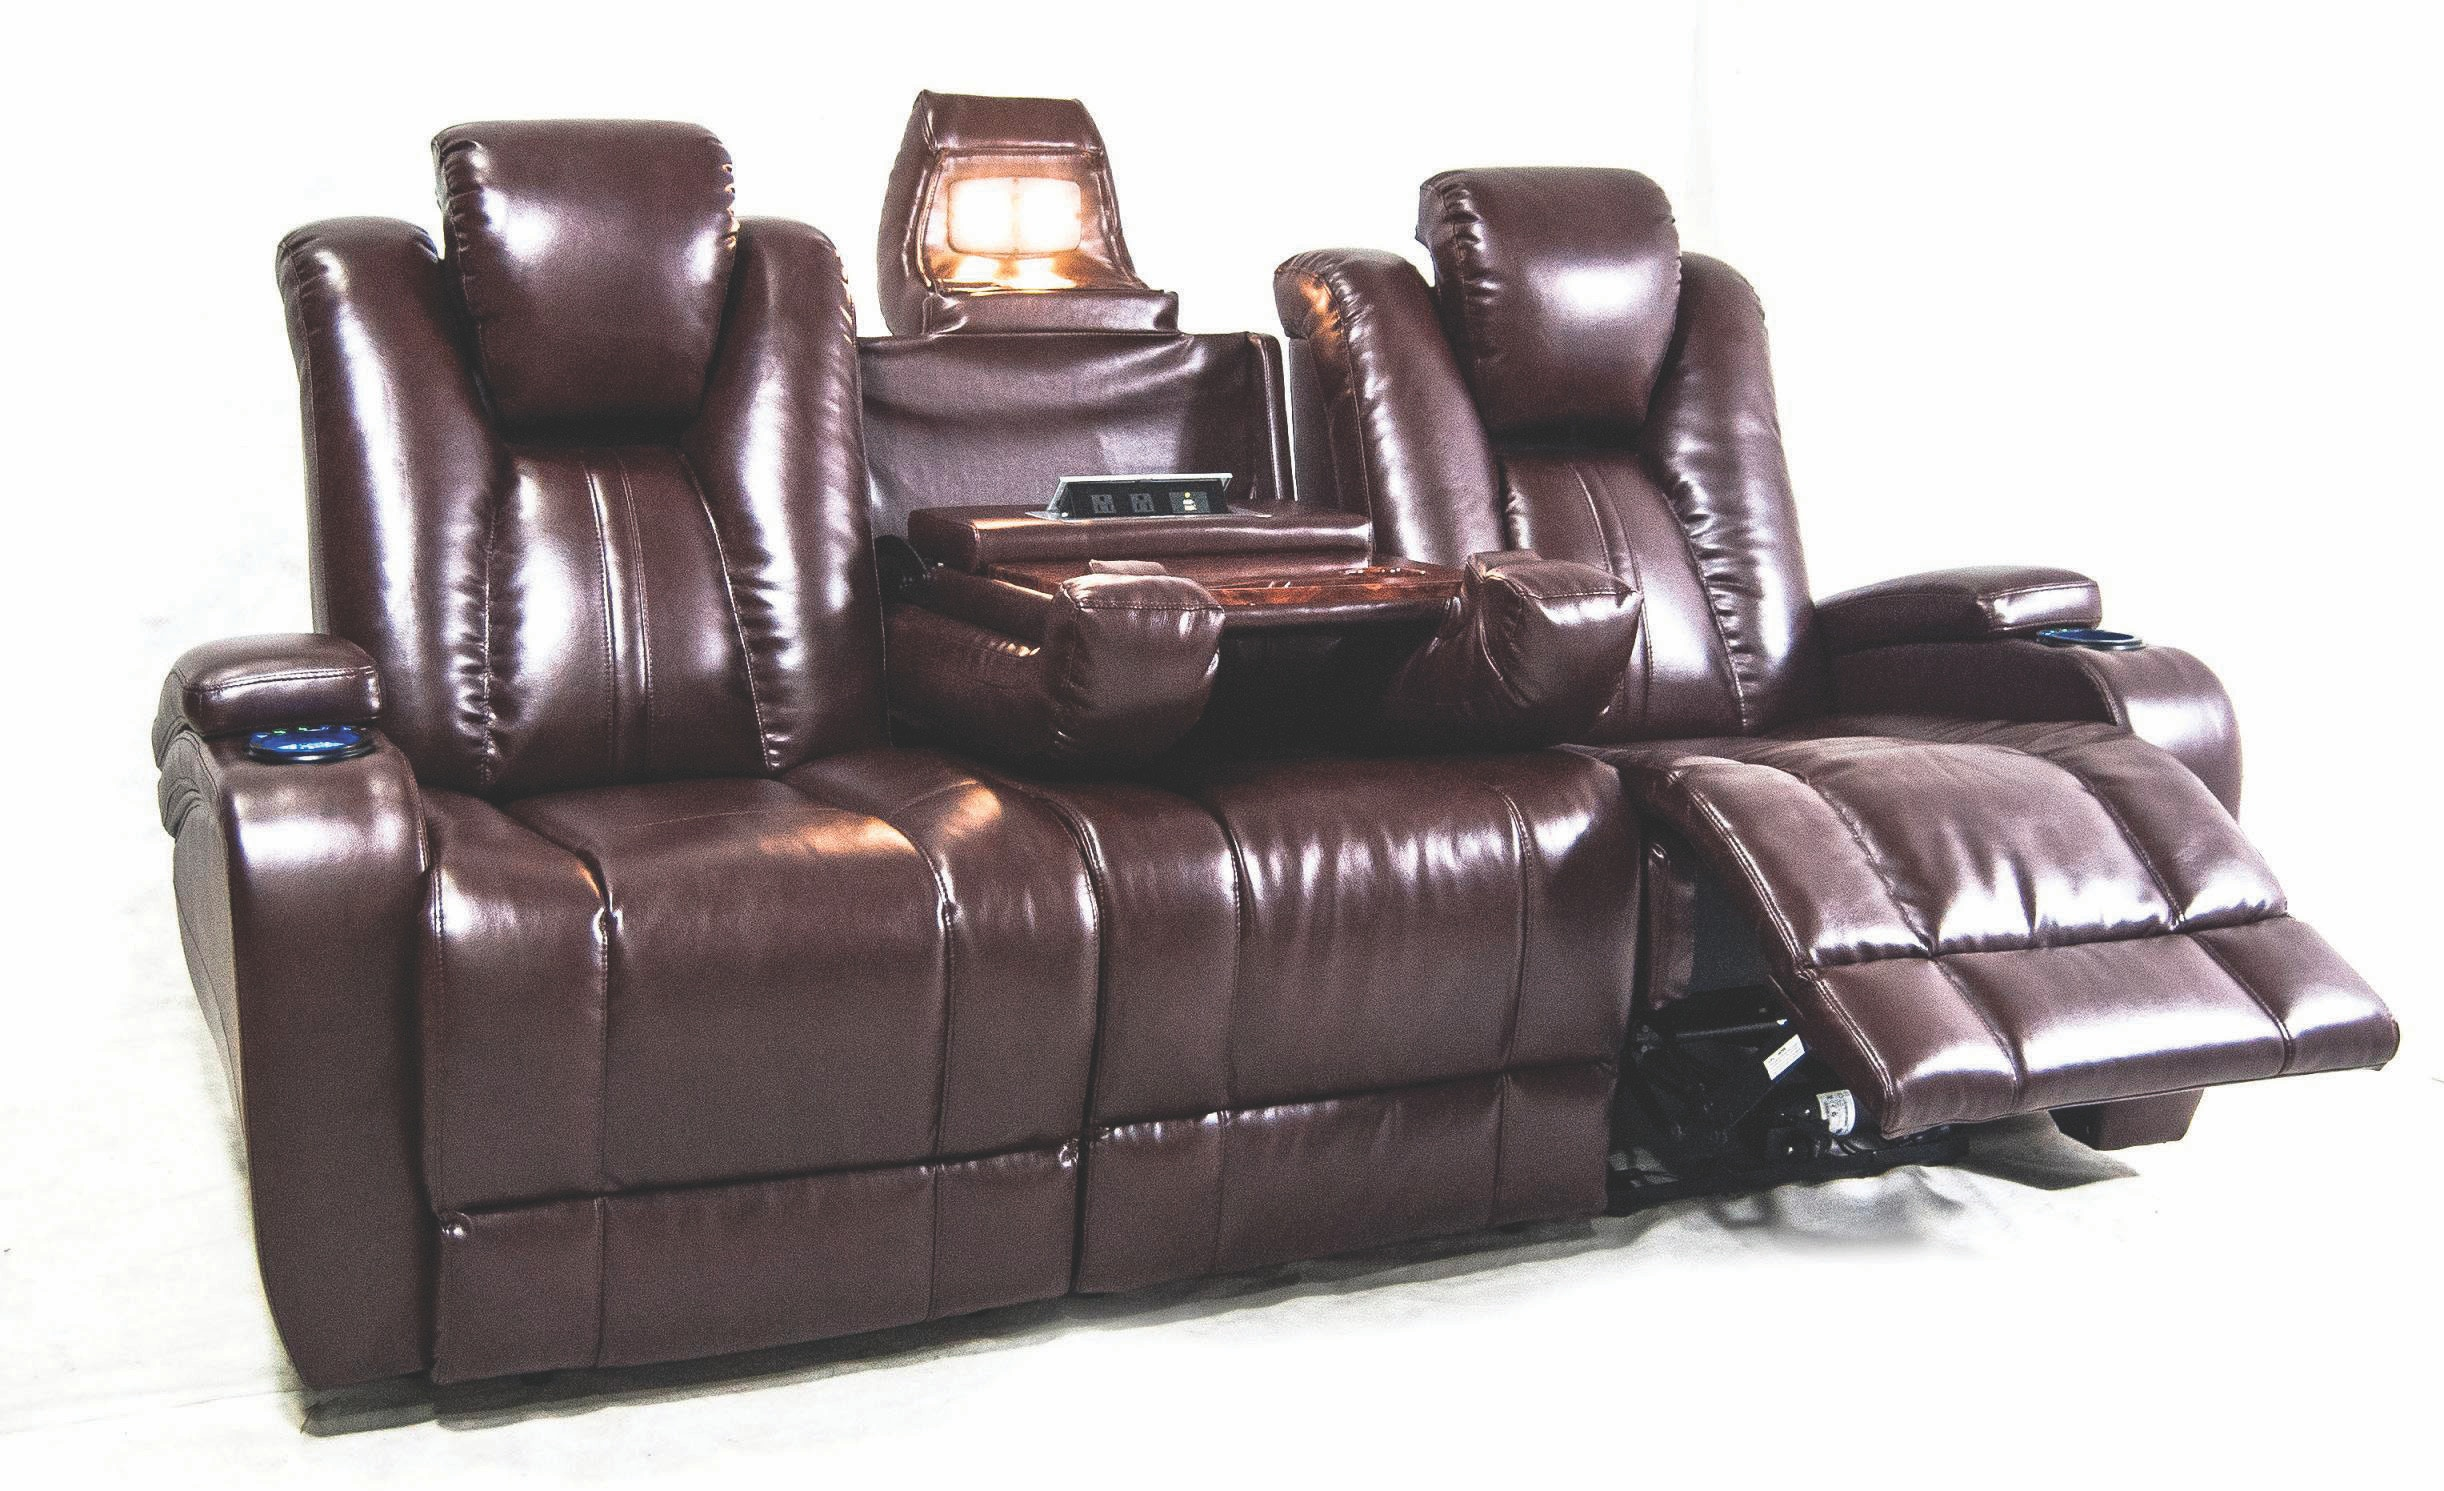 theaters couches couch of cinema for seating reclining home theater media sofa chairs size sofas large